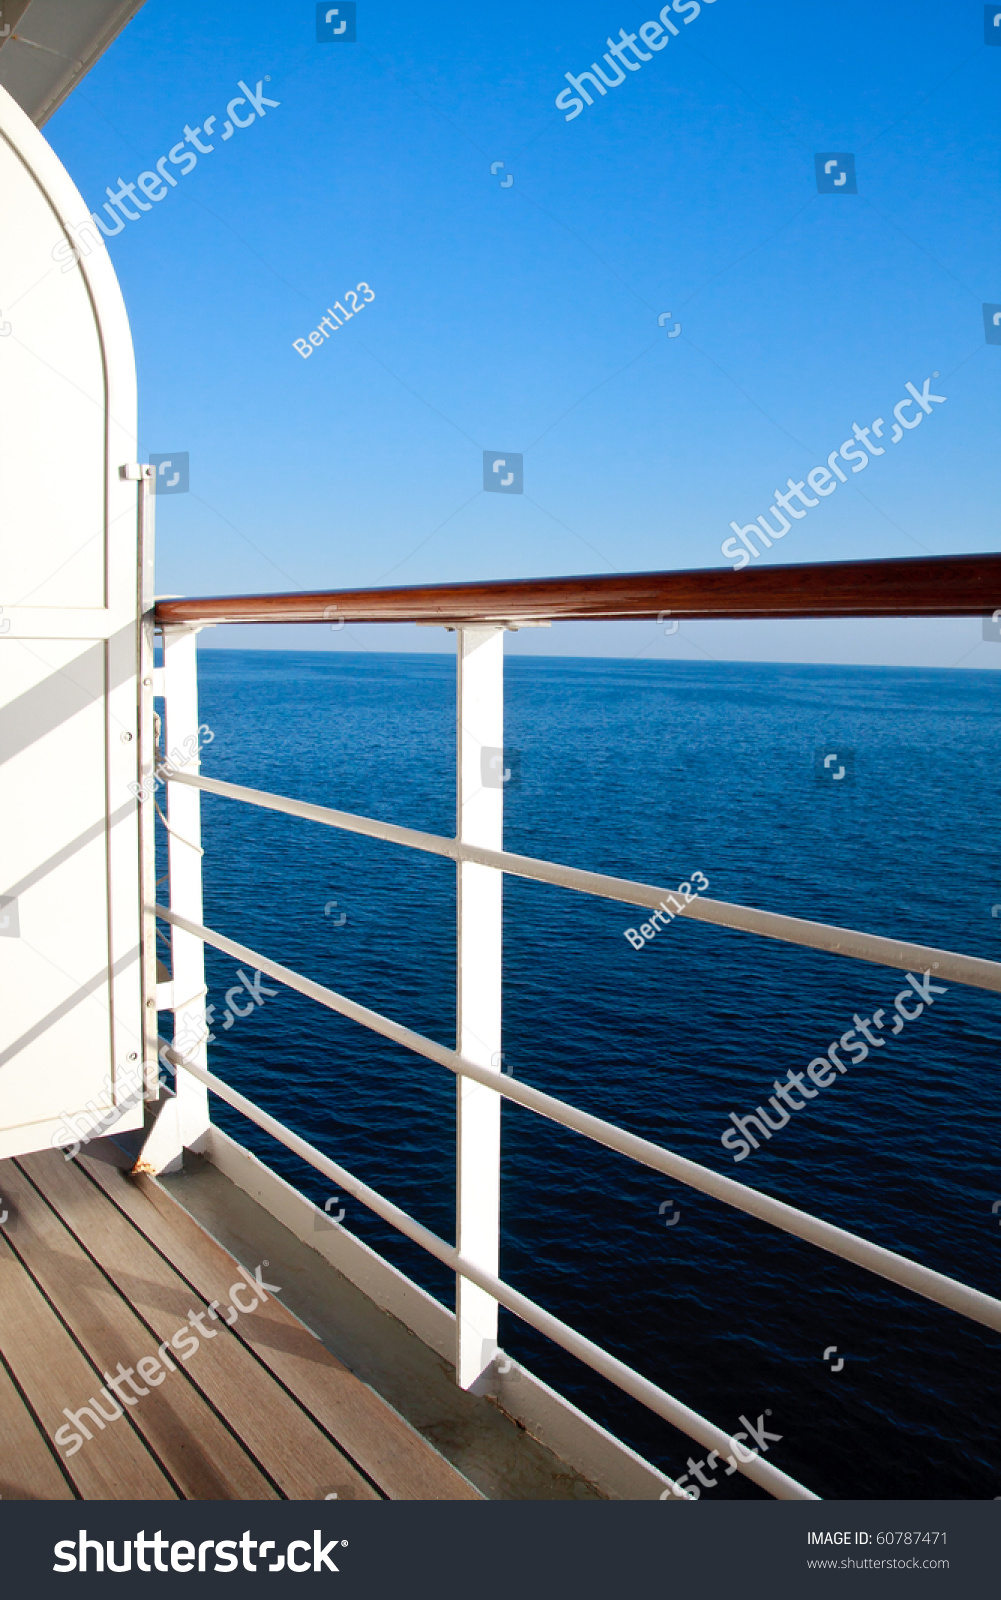 Luxurious cruise ship balcony view on blue ocean stock for Balcony in cruise ship